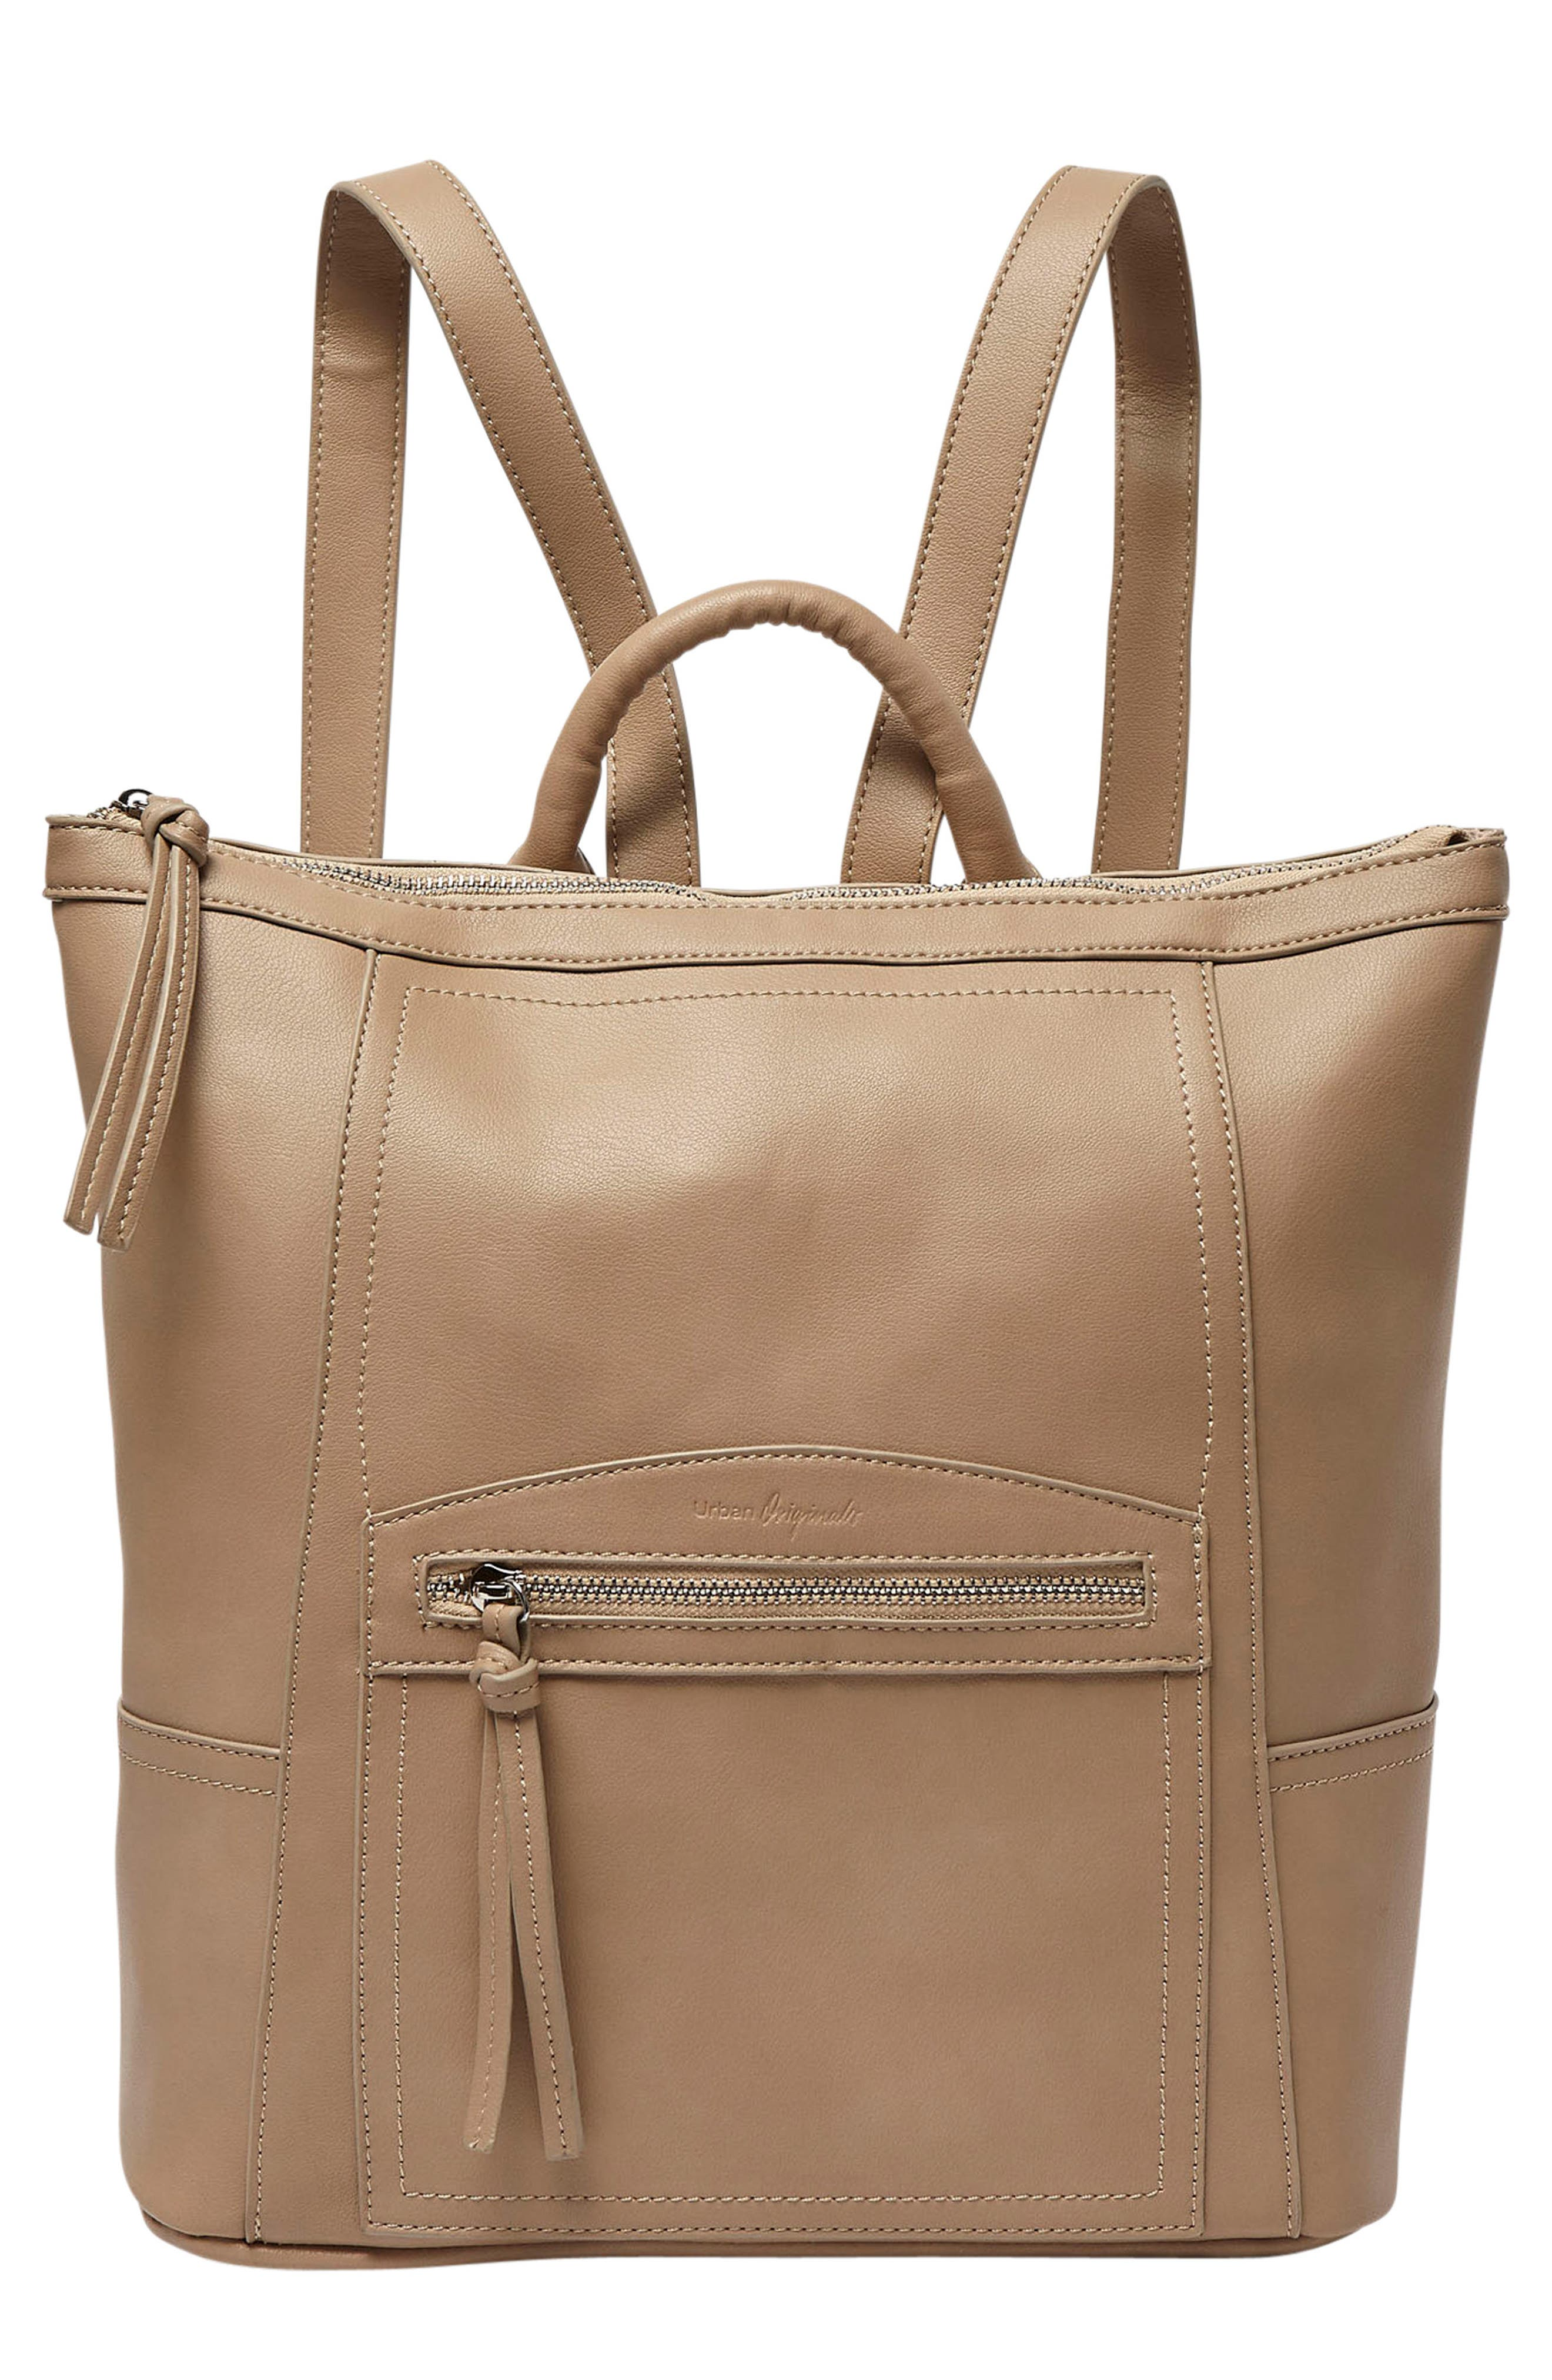 Eternity Vegan Leather Backpack - Brown in Taupe